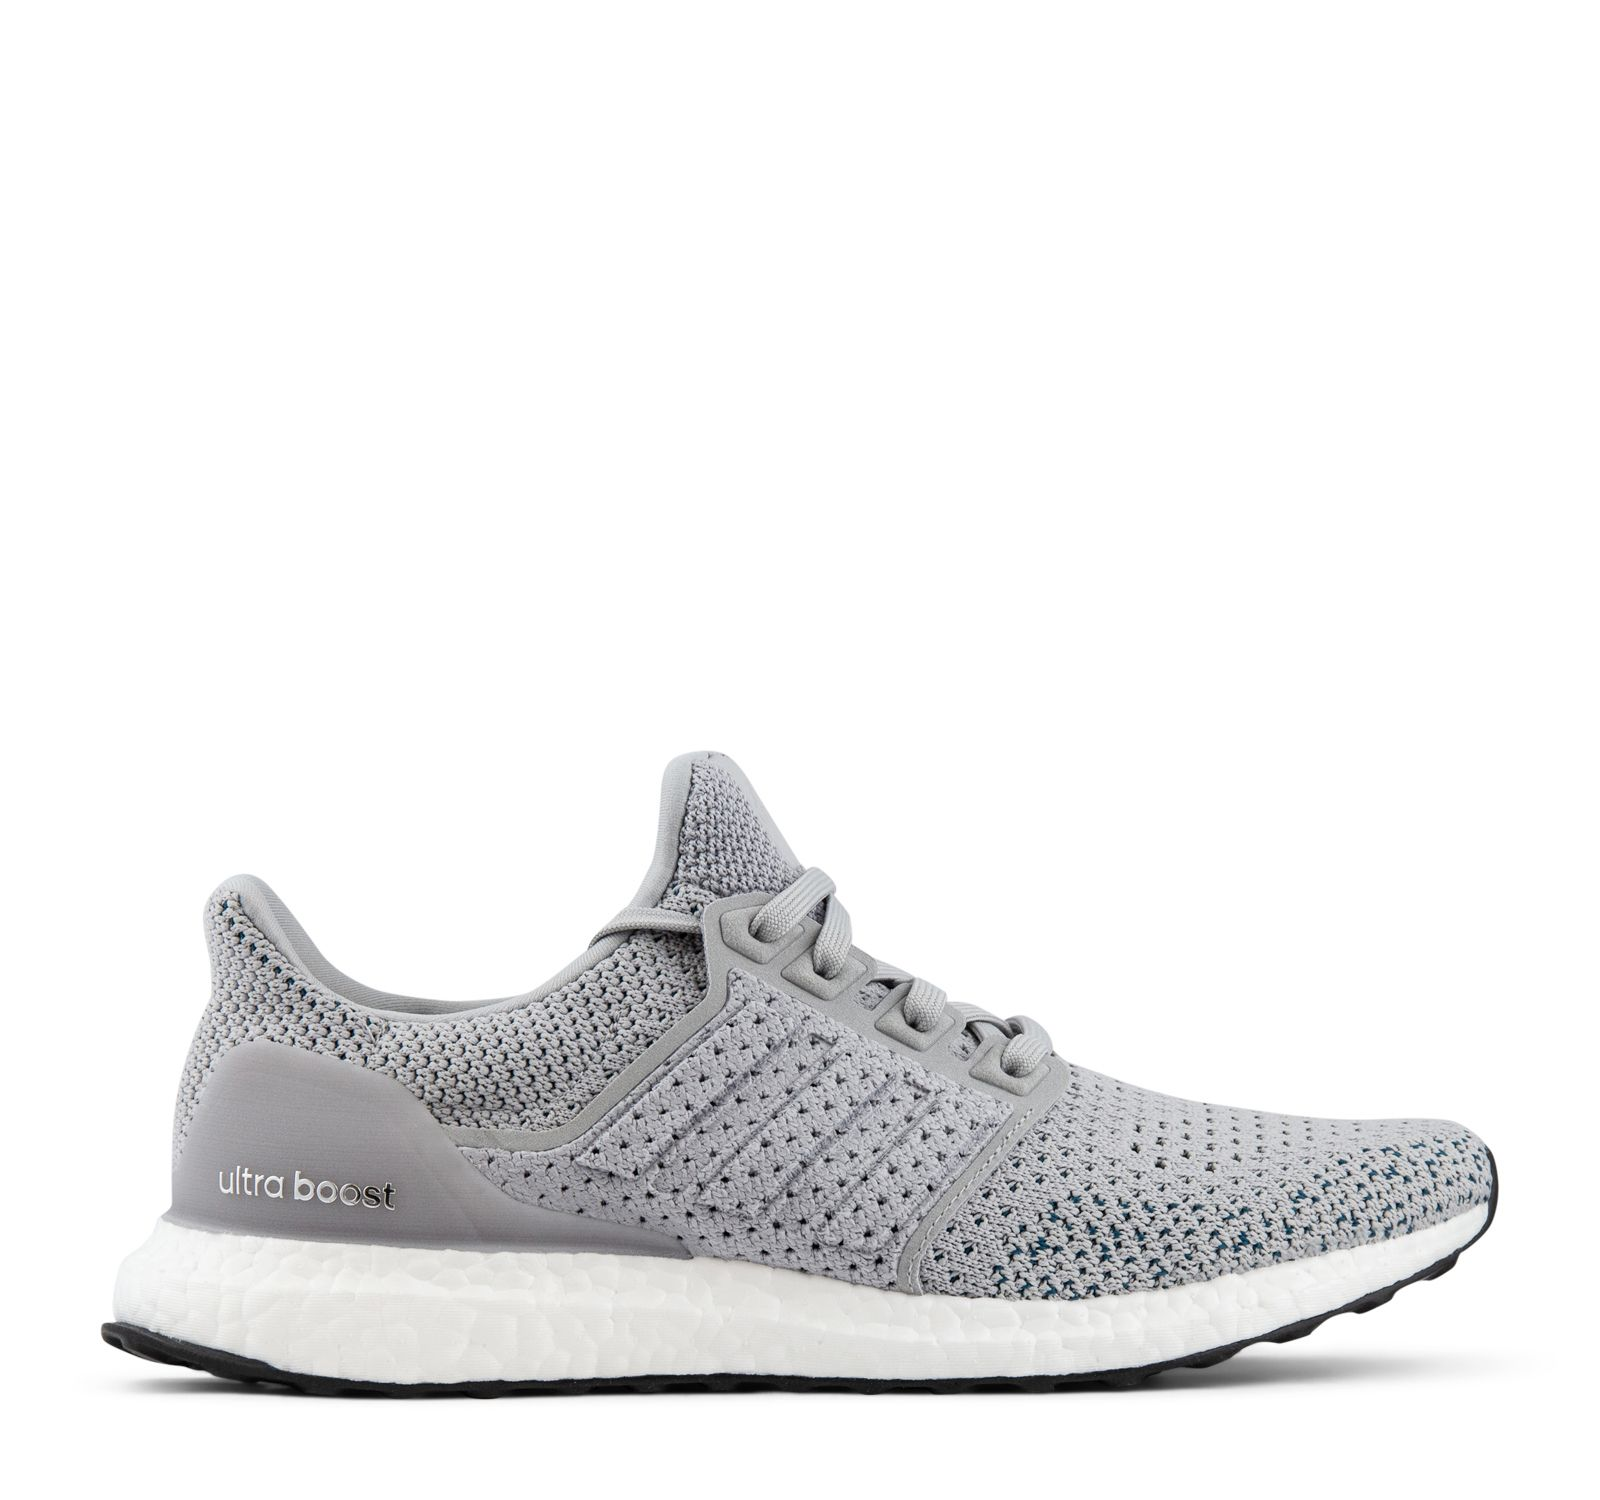 new style 8a439 be3fd Adidas UltraBOOST Clima BY8889 - Grey